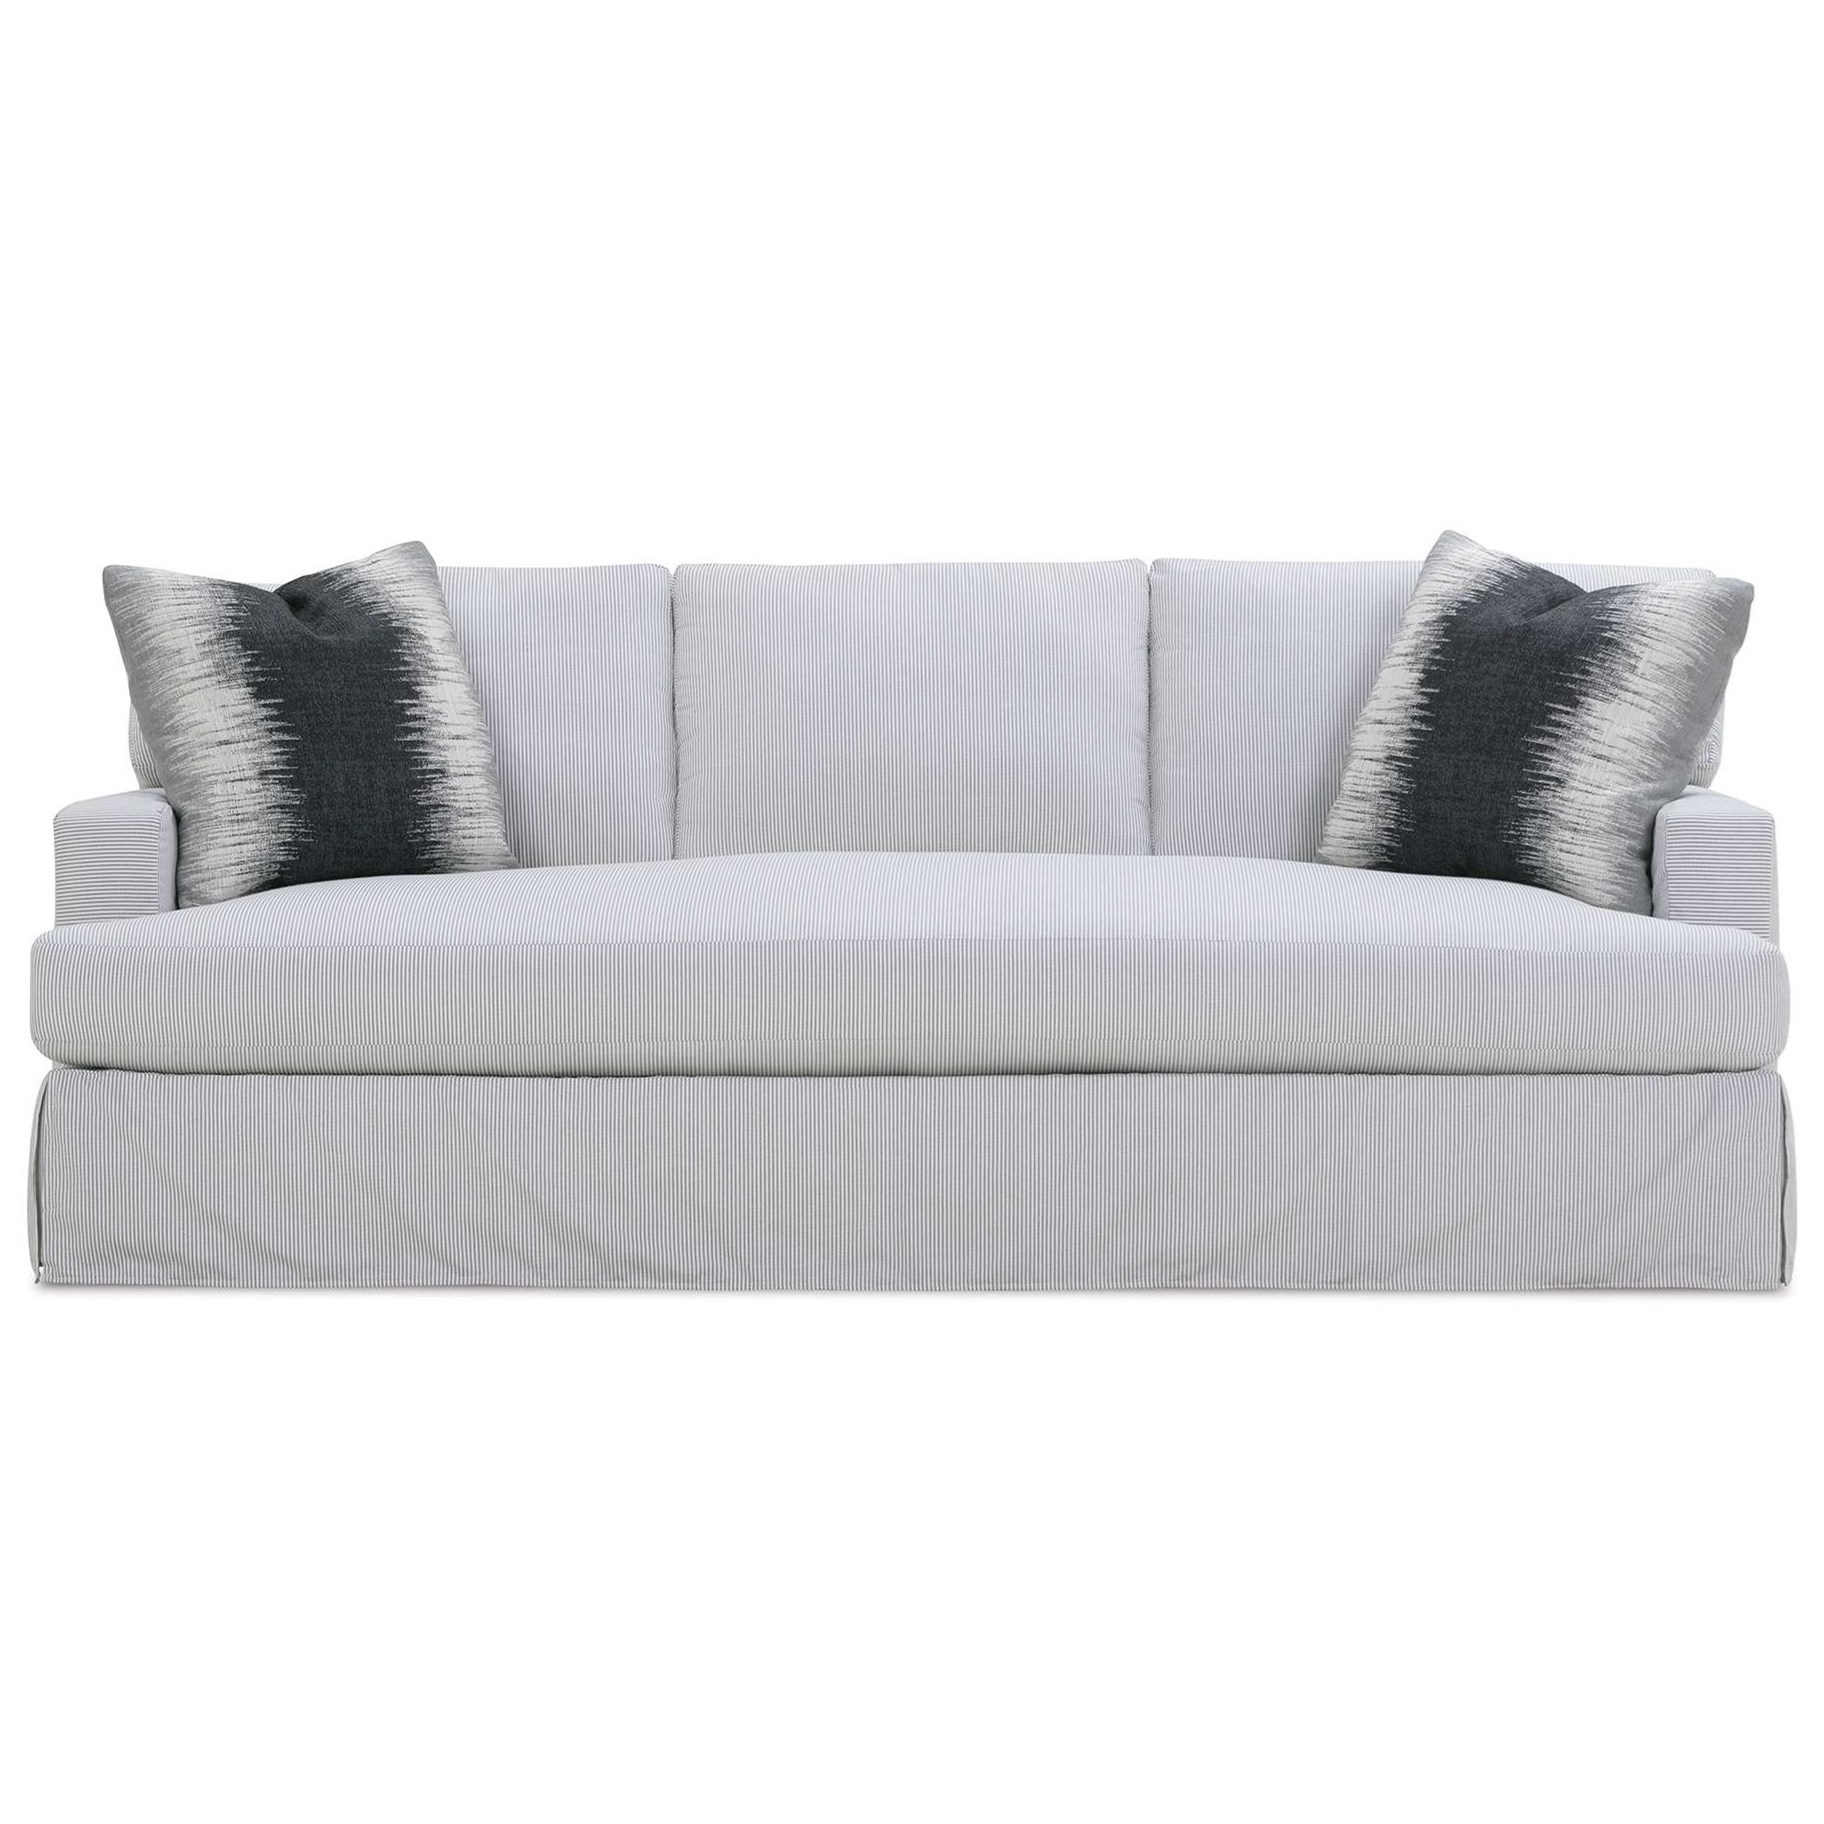 Grayson Slipcovered Sofa by Rowe at Steger's Furniture